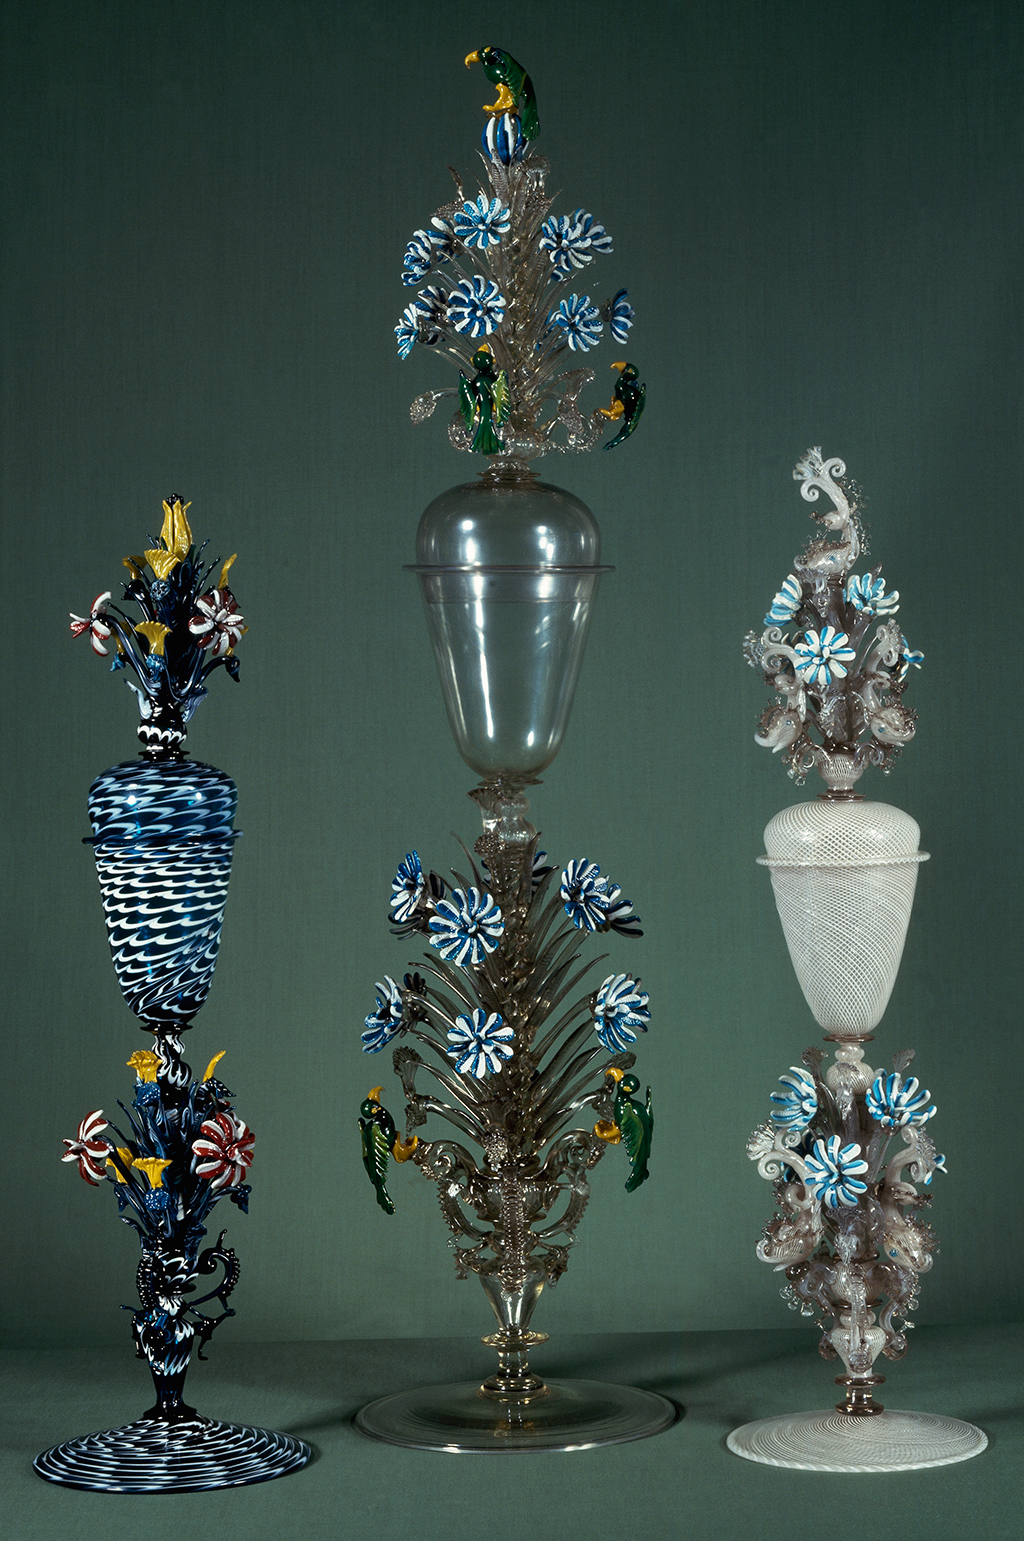 FIG. 31. Glass goblets decorated with polychrome enamel. Venice, Muranese glass factory, about 1708. Rosenborg Castle, Copenhagen, Danske Kongers Kronologiske Samling. Photo: De Agostini Picture Library / Bridgeman Images.